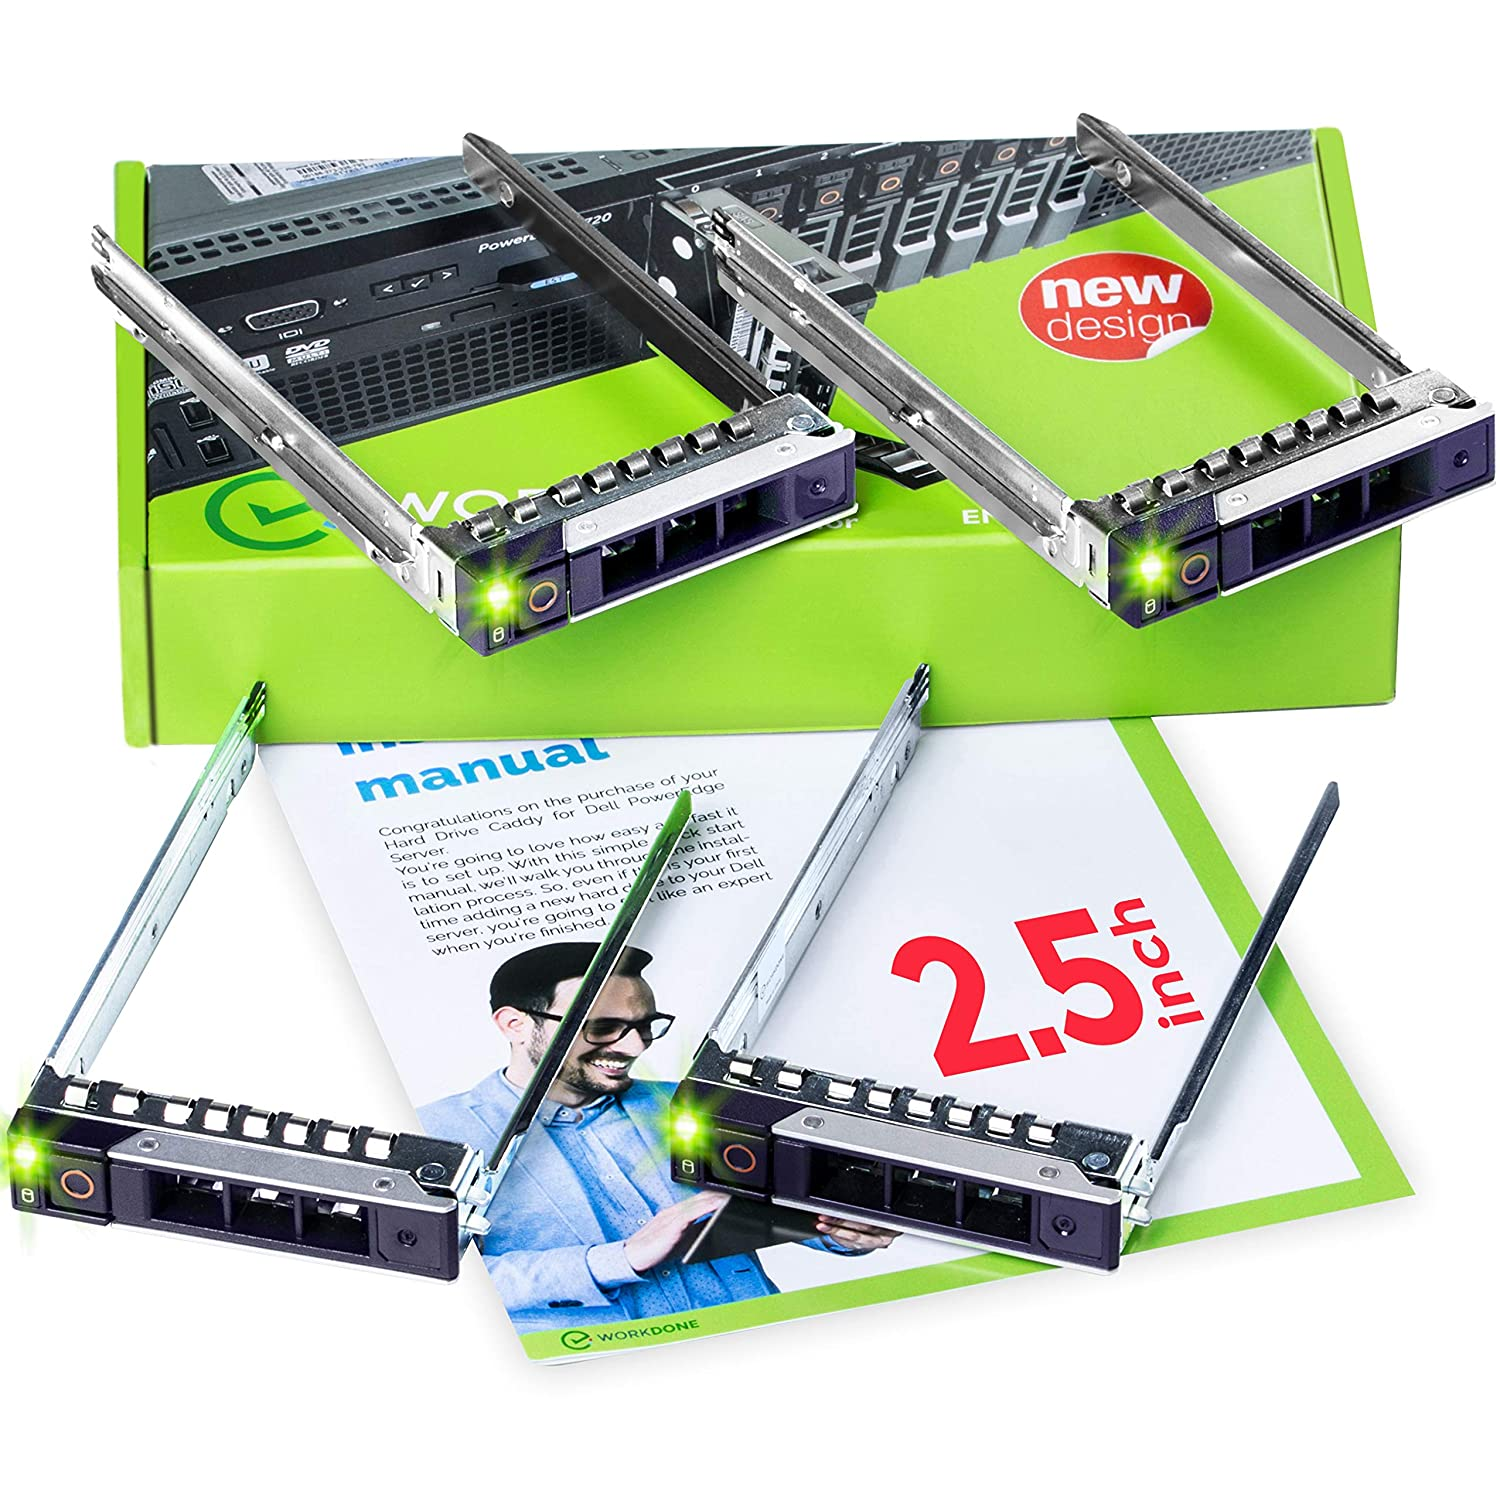 WORKDONE 4-Pack - 2 5